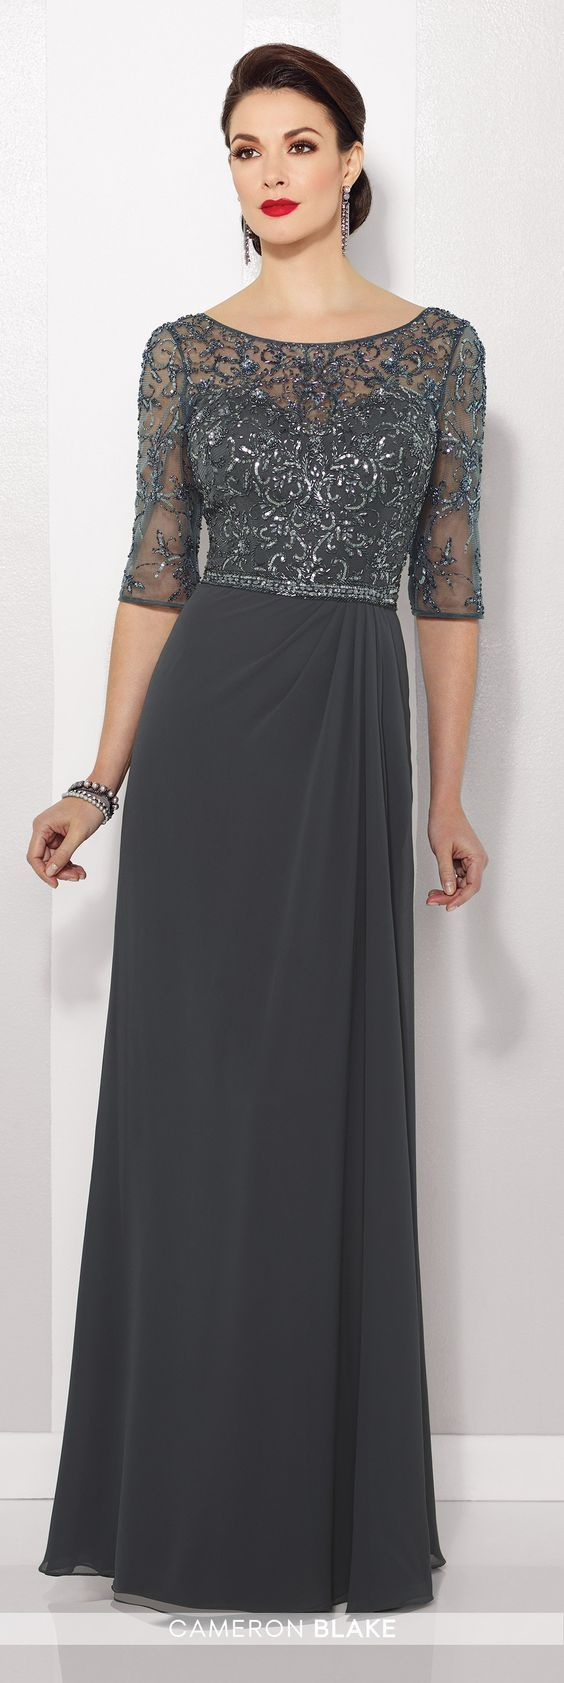 Cameron Blake 216684 Mother of the Bride Chiffon A-line Gown